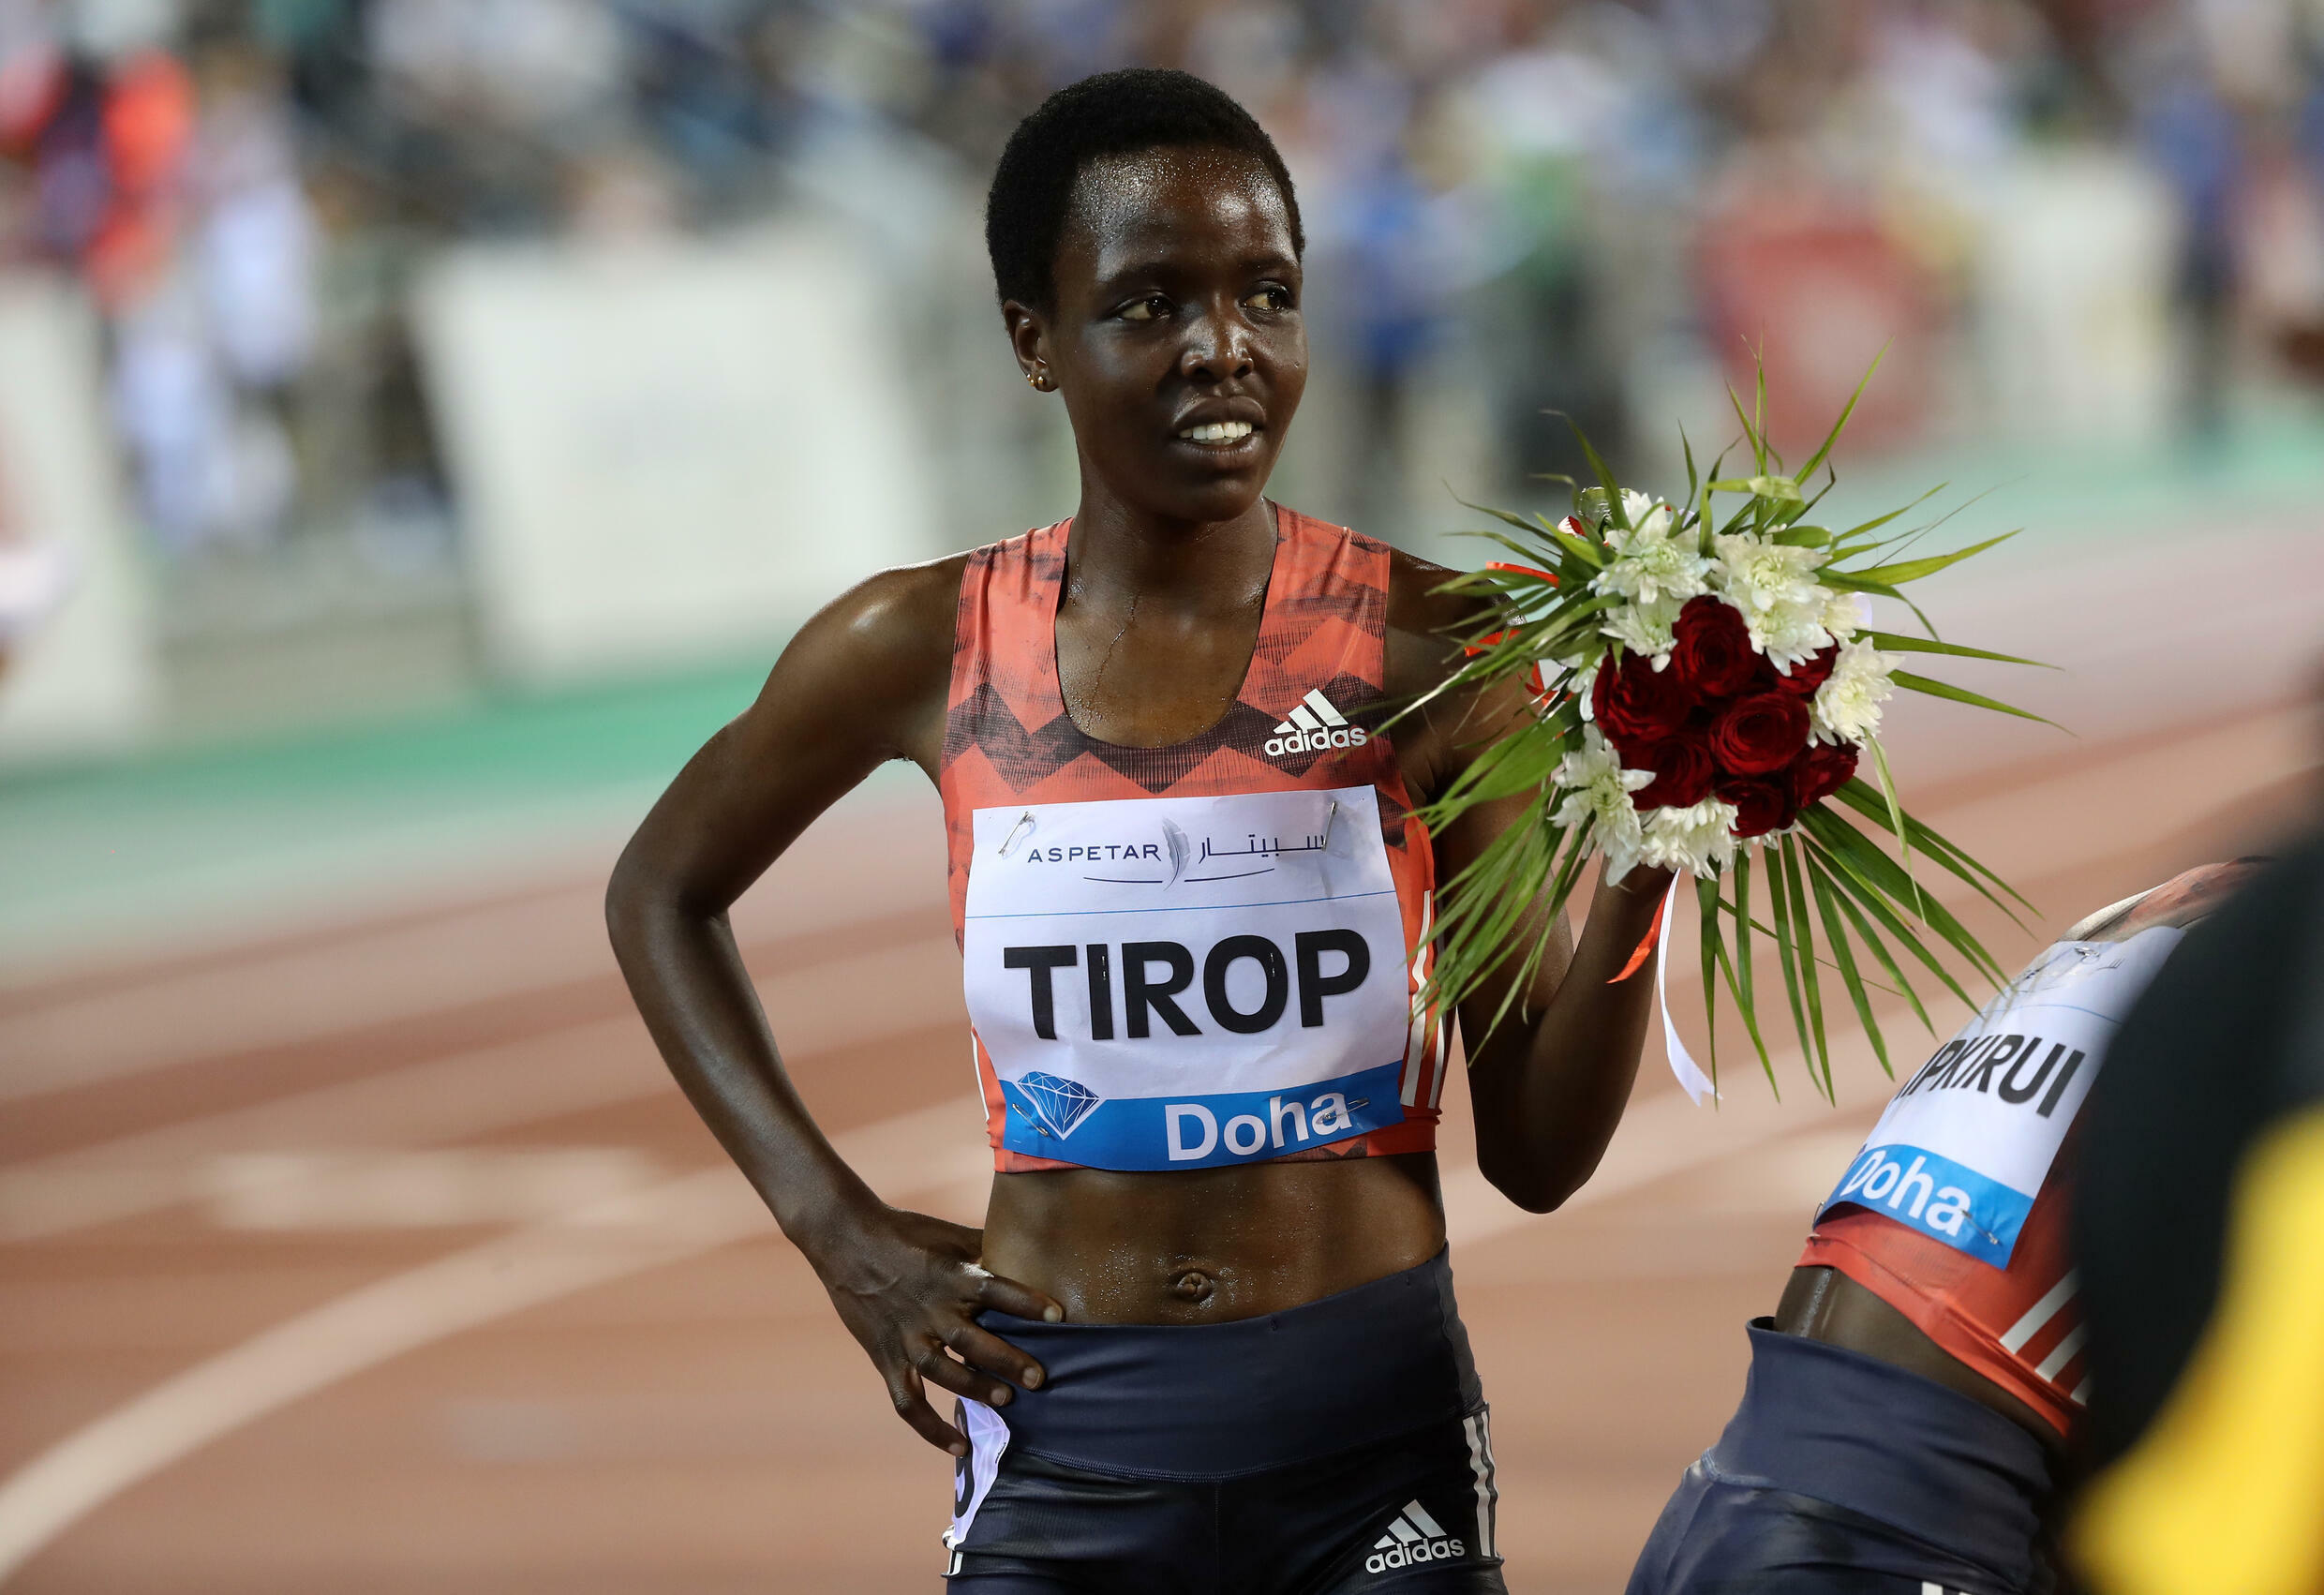 FILE - Kenyan athlete Agnes Jebet Tirop celebrates her second place finish in the 3,000-meter Diamond League athletics event in Doha, Qatar, on May 4, 2018.